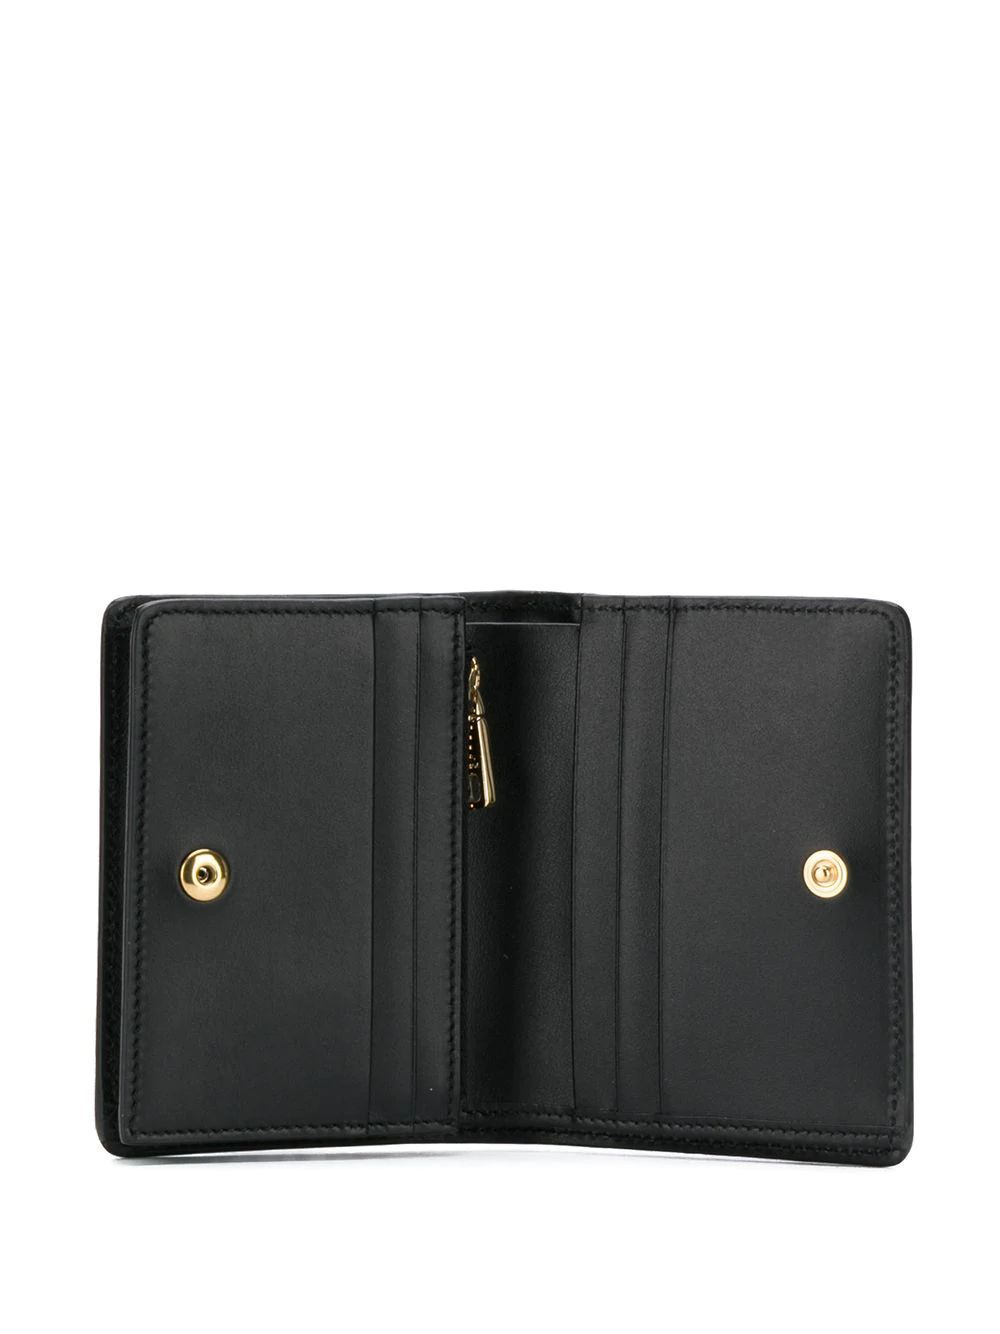 DOLCE E GABBANA WOMEN'S BI1211AX35580999 BLACK LEATHER WALLET